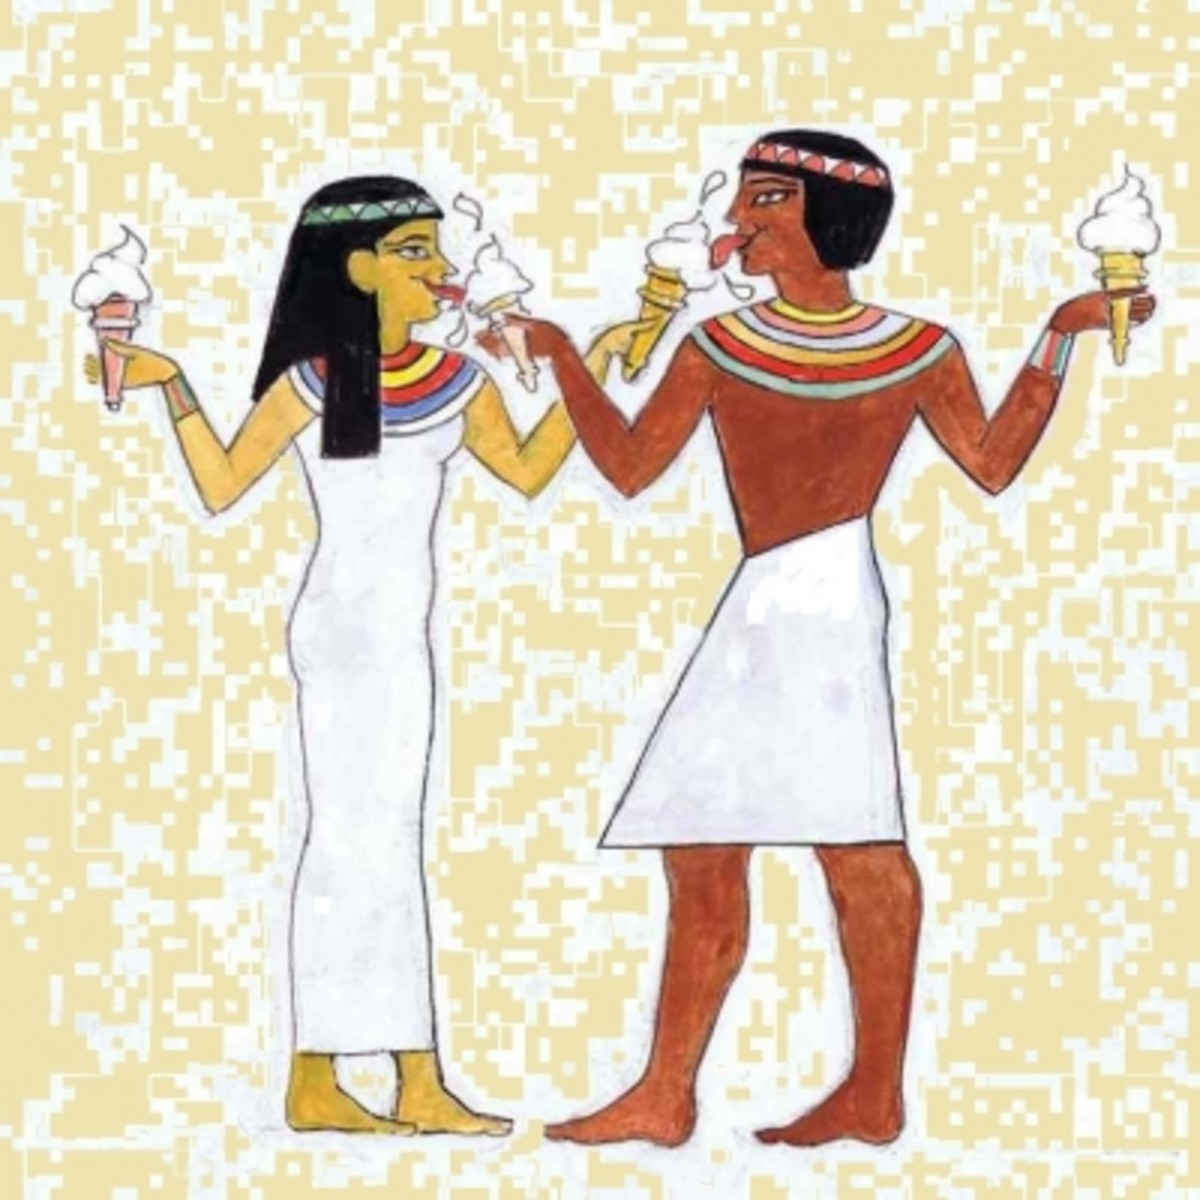 Making an Ancient Ice Cream for Cleopatra